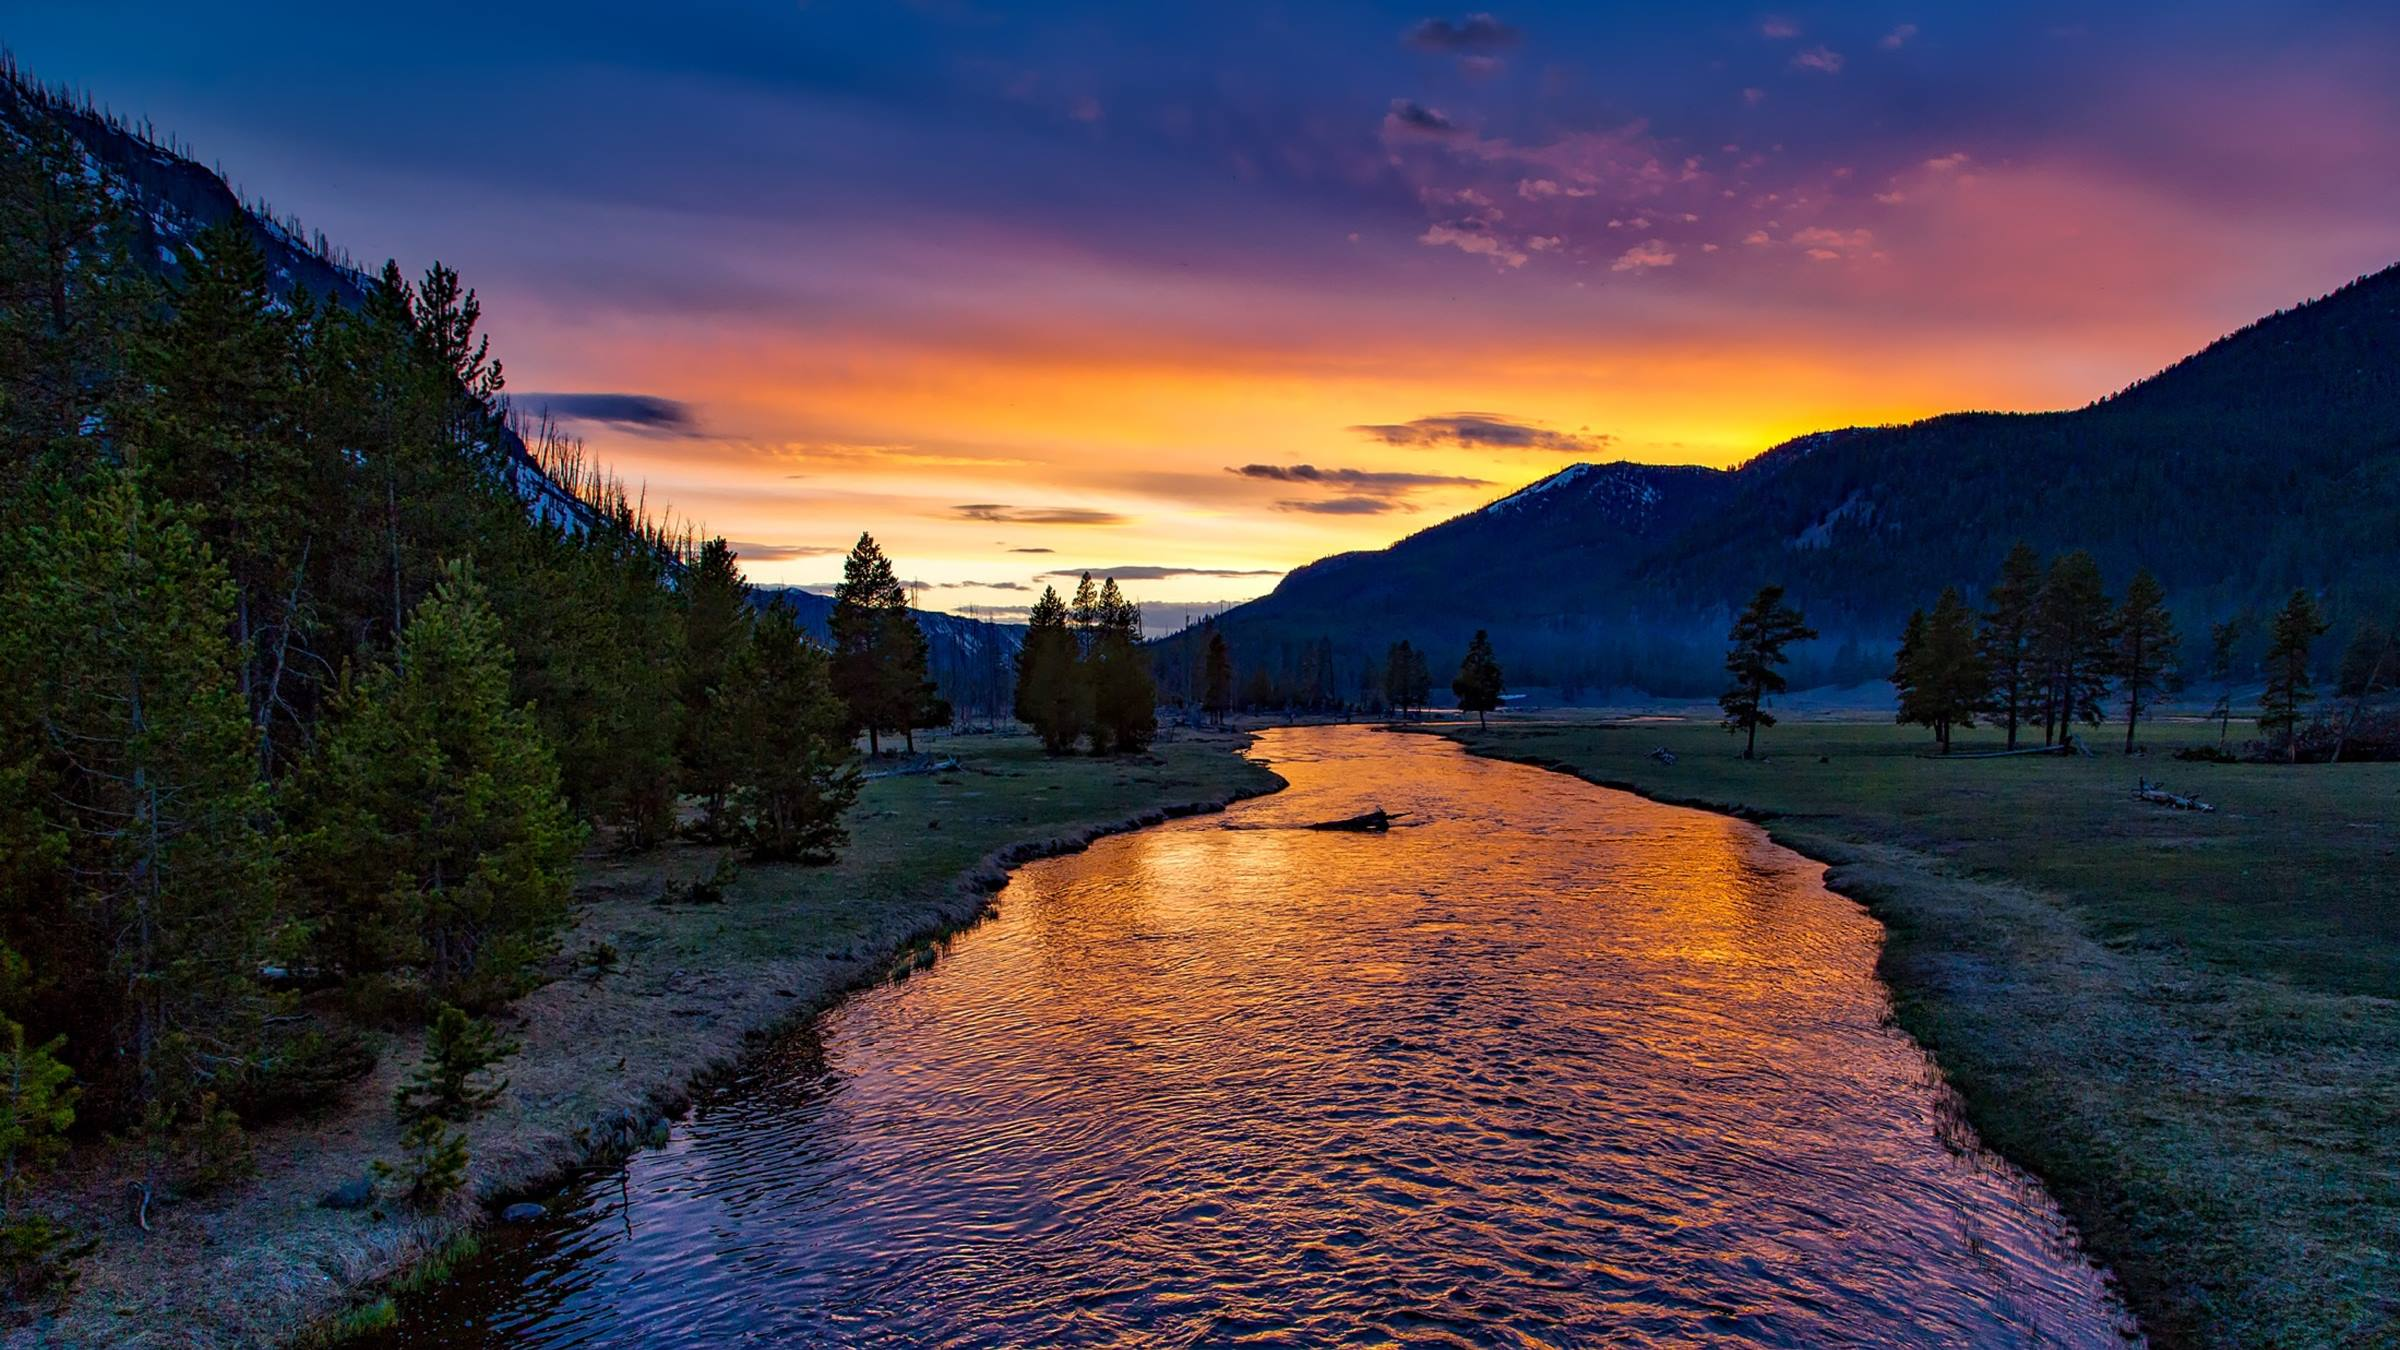 yellowstone national park river sunset trees mountains